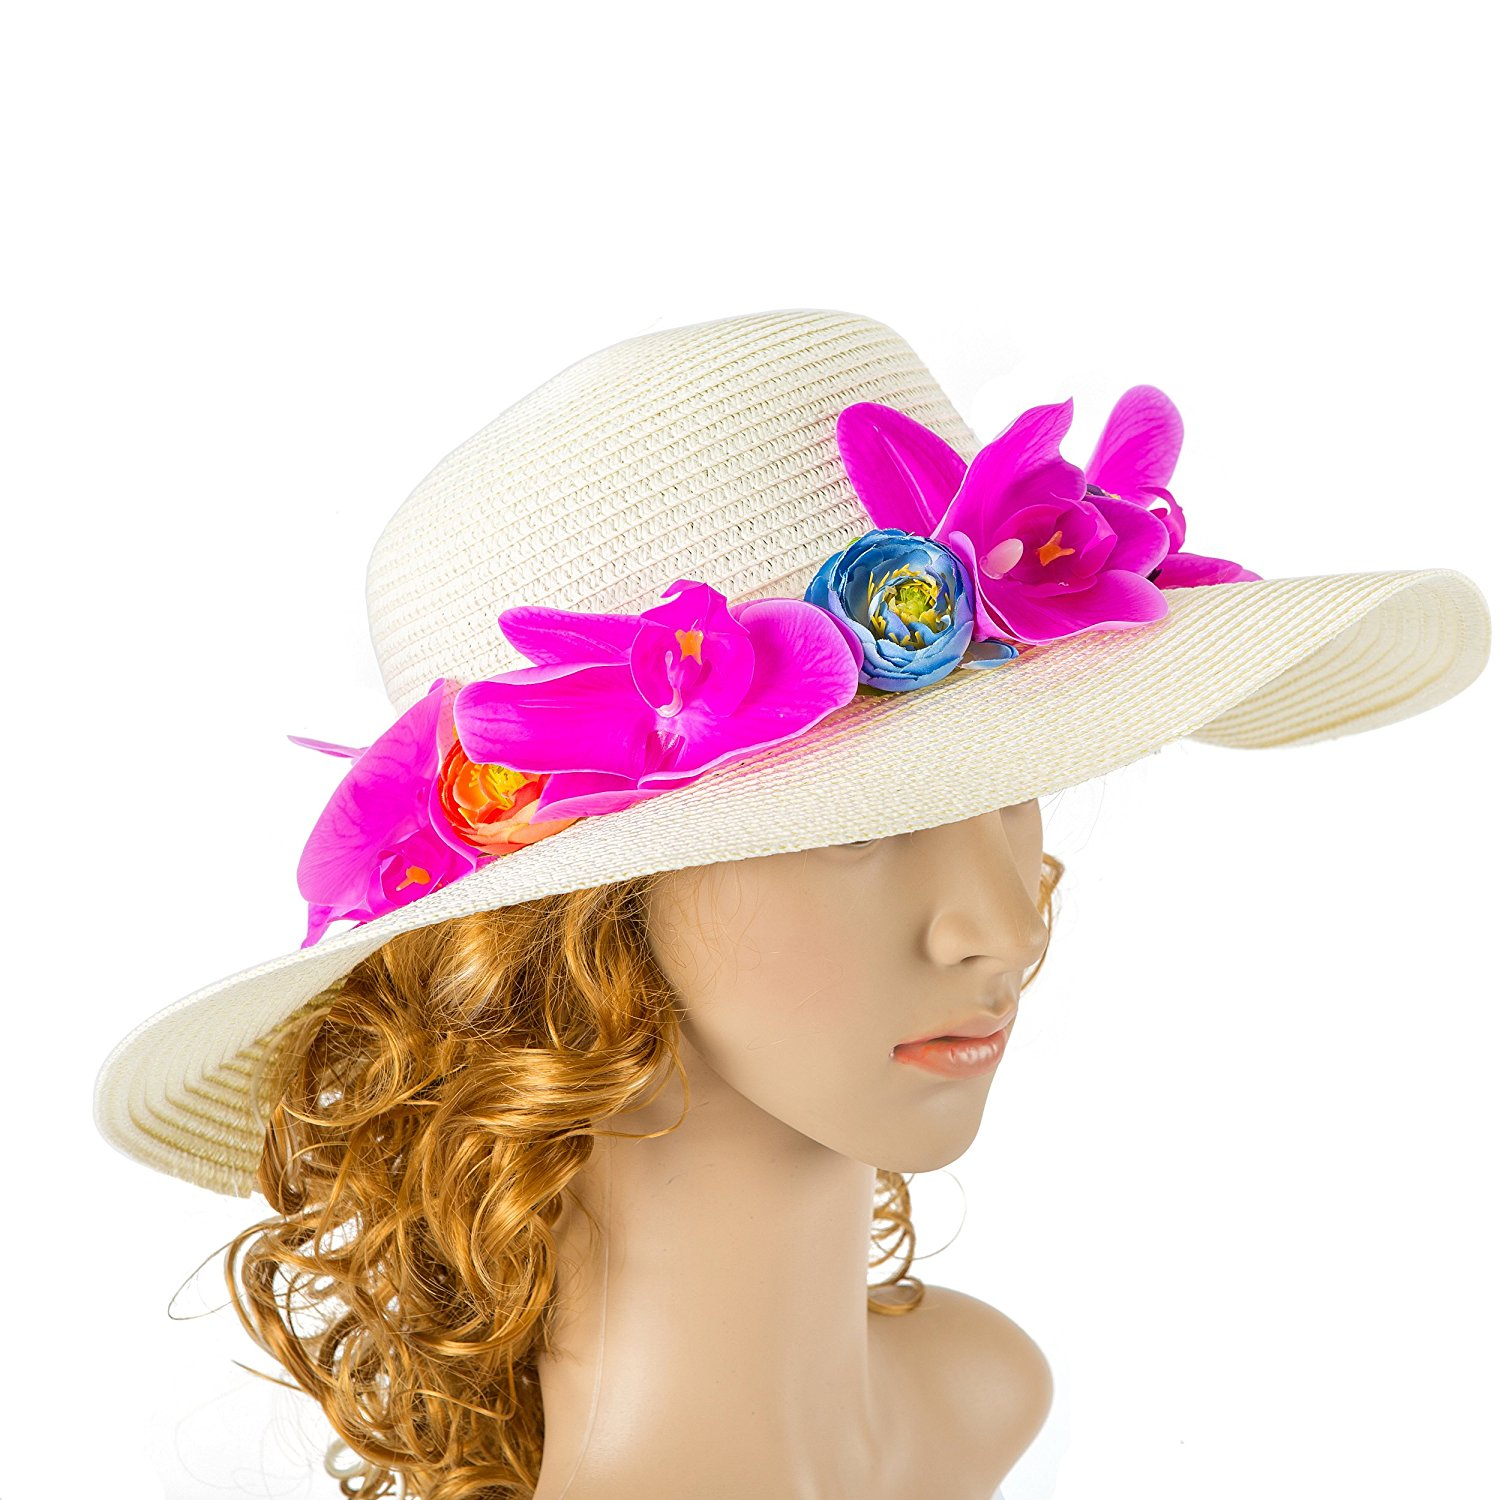 0a28adcb Get Quotations · Off White Wedding Hat with orchid Flower and Bow Kentucky  Derby Hat Wedding Accessory Cocktail Hat